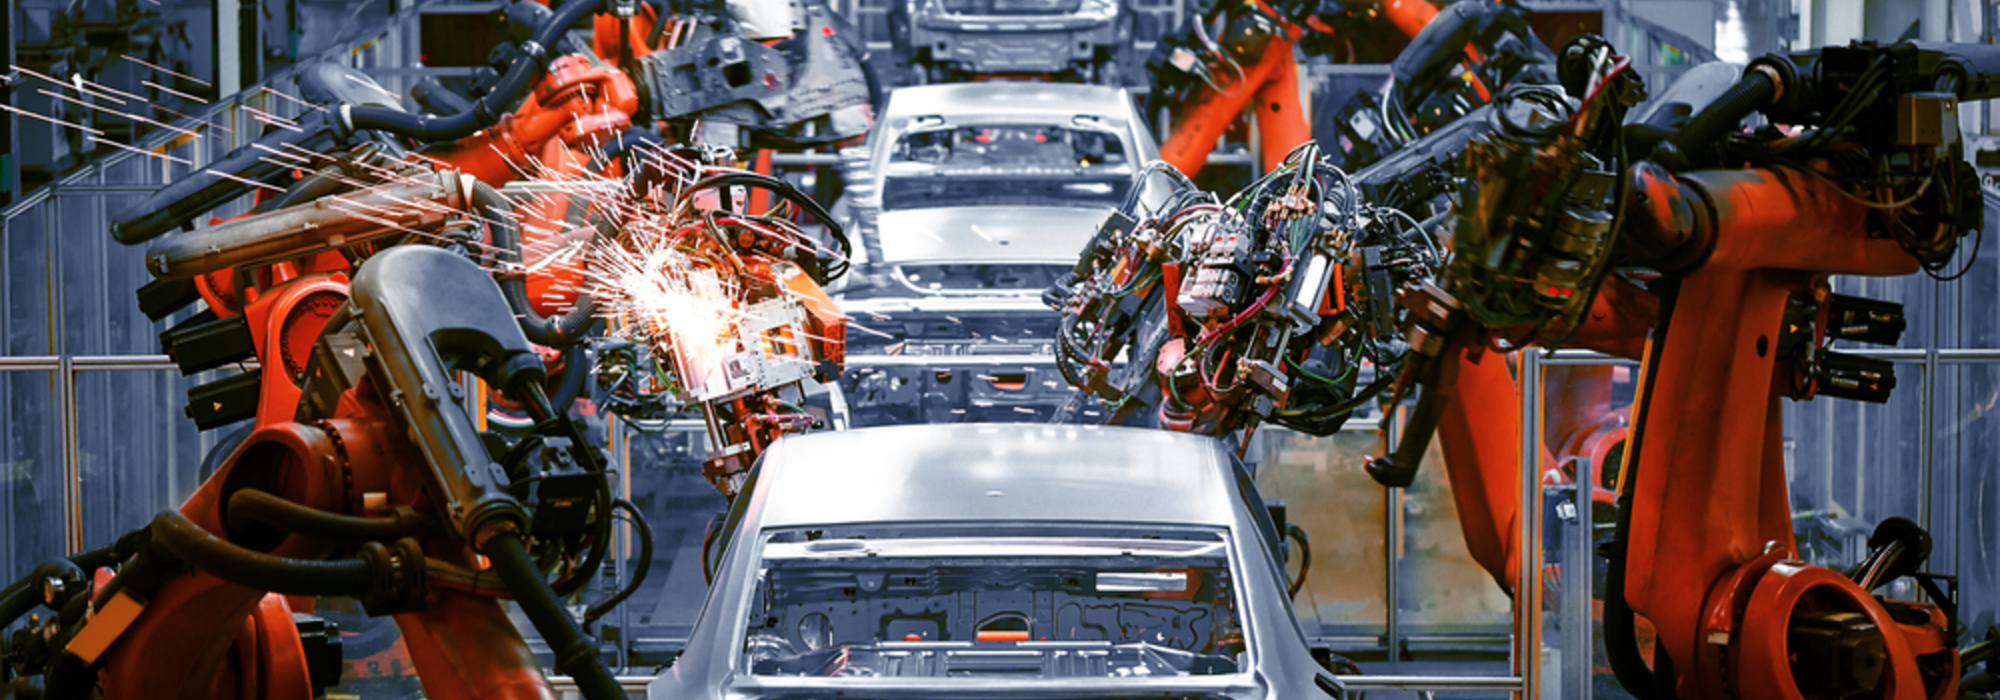 An automotive production line, with cars being built by robotic arms